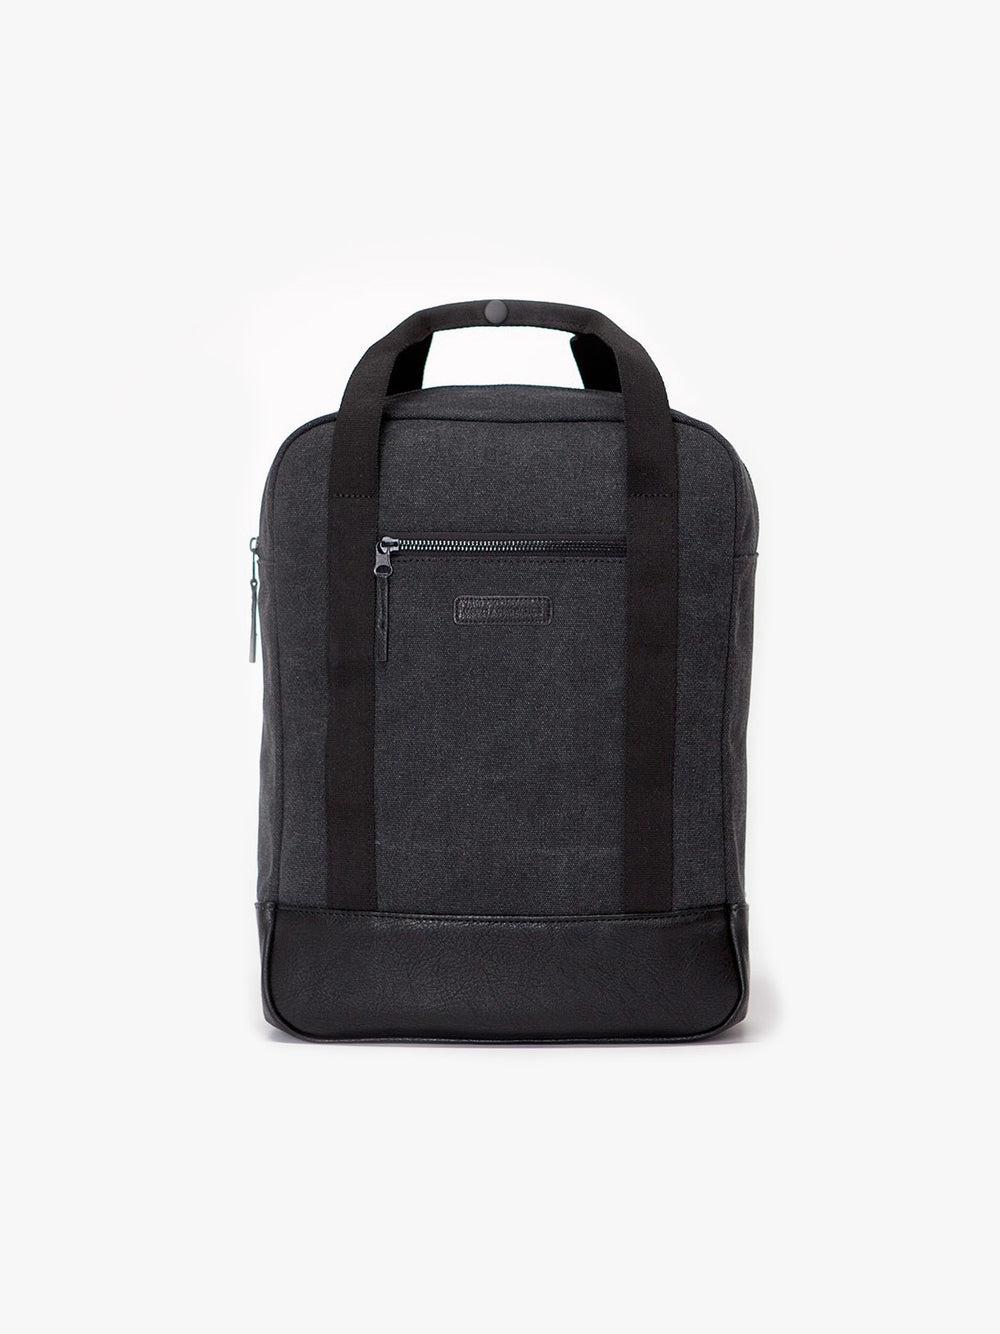 Ison Backpack crow series black designed in Berlin